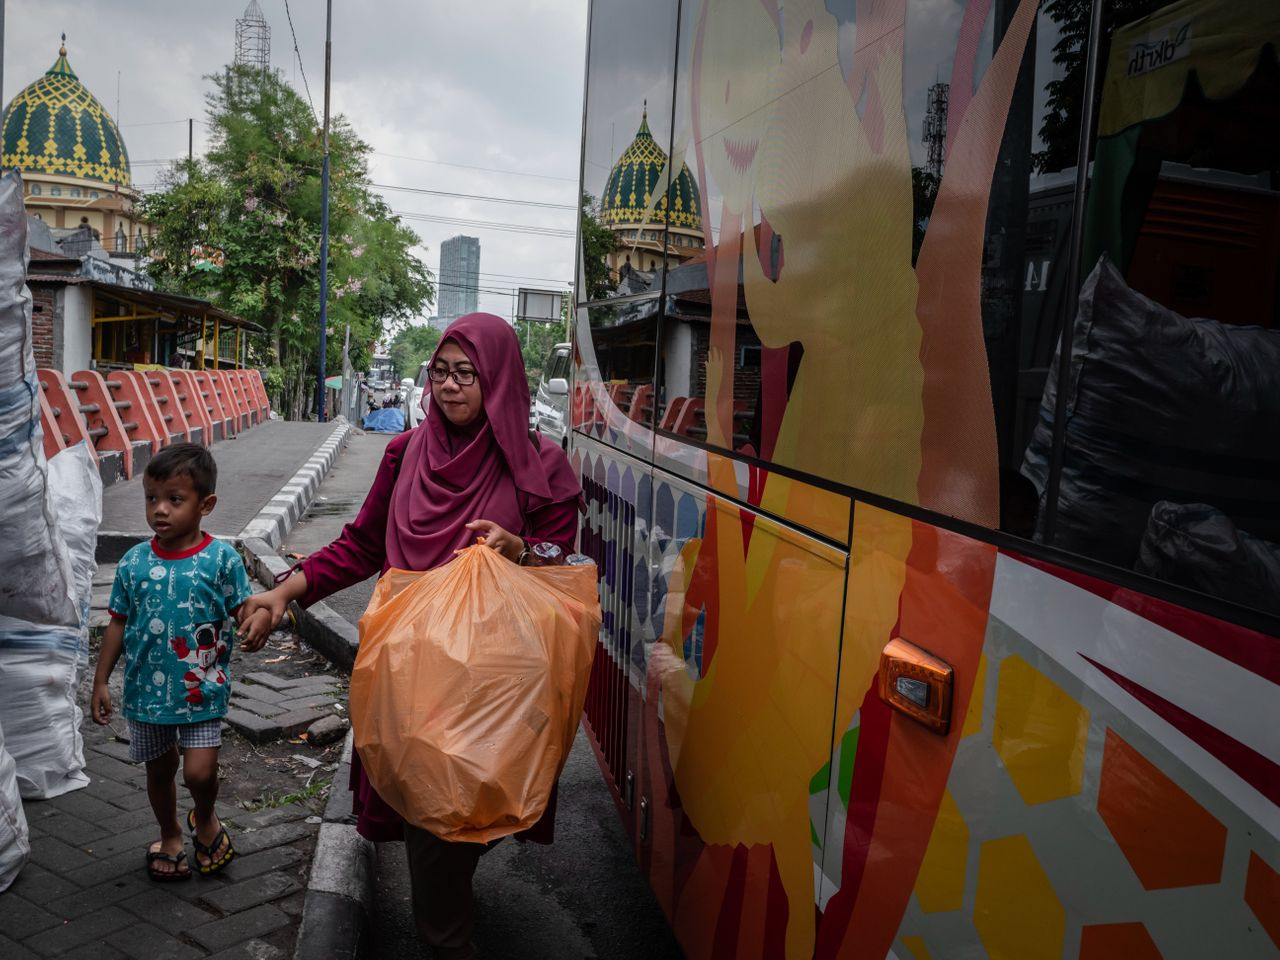 A woman brings used plastic bottles to exchange for bus tickets in Surabaya, East Java.